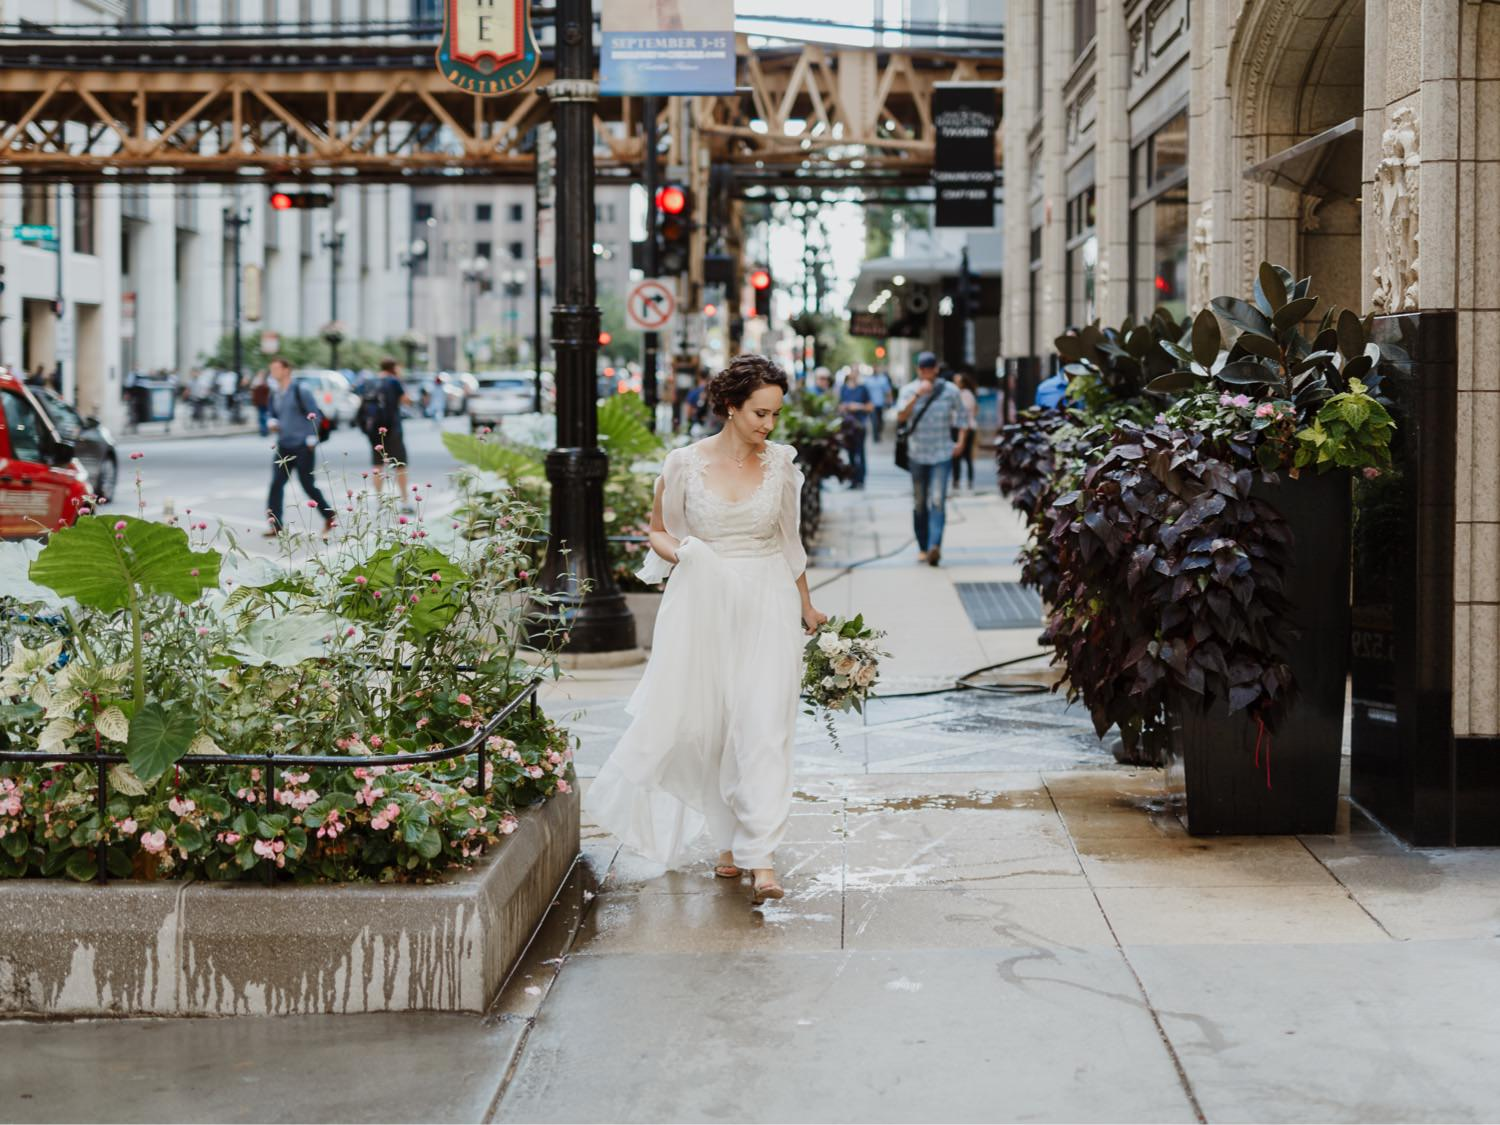 Bride walks in downtown Chicago to see the groom for the first time across from Allegro hotel in Chicago